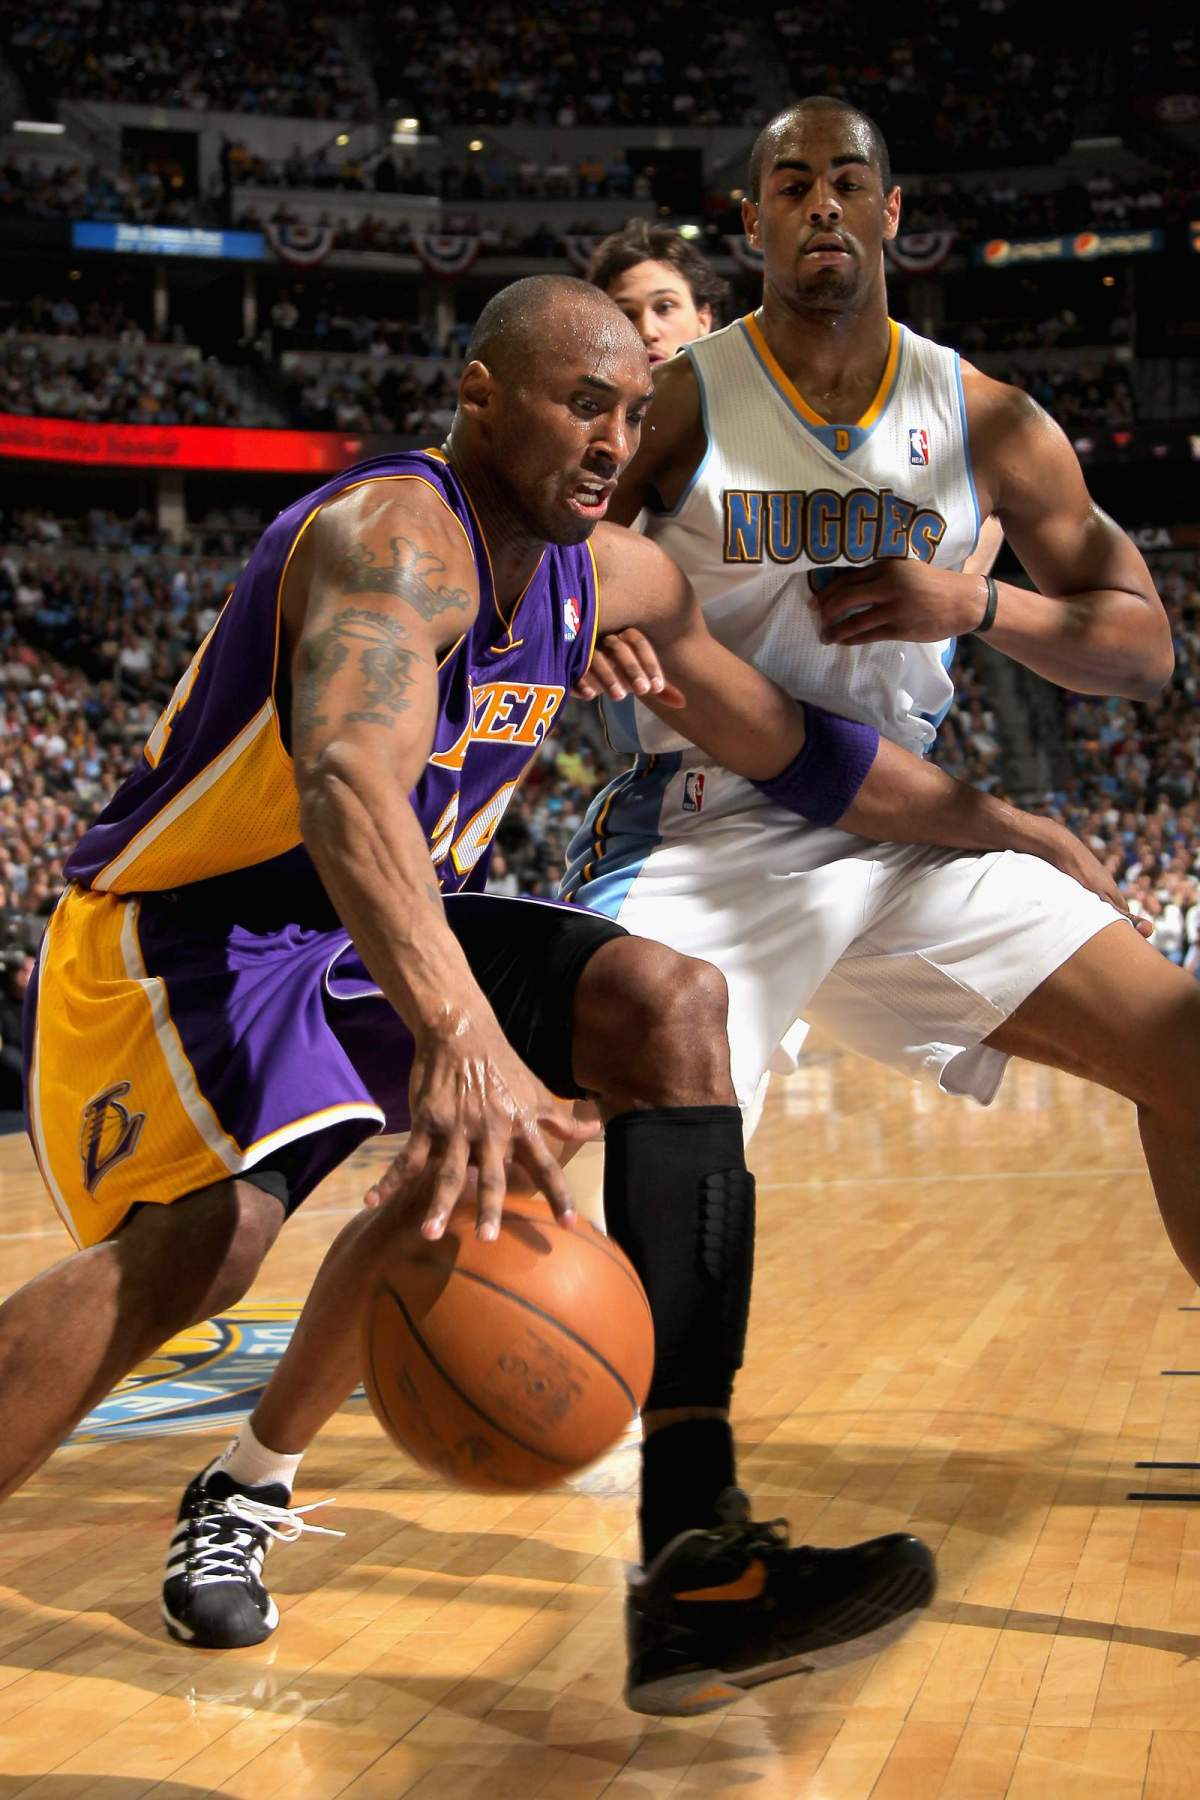 Kobe Bryant drives against Arron Afflalo of the Denver Nuggets in Game 4 of the Western Conference Quarterfinals in the 2012 NBA Playoffs at Pepsi Center.